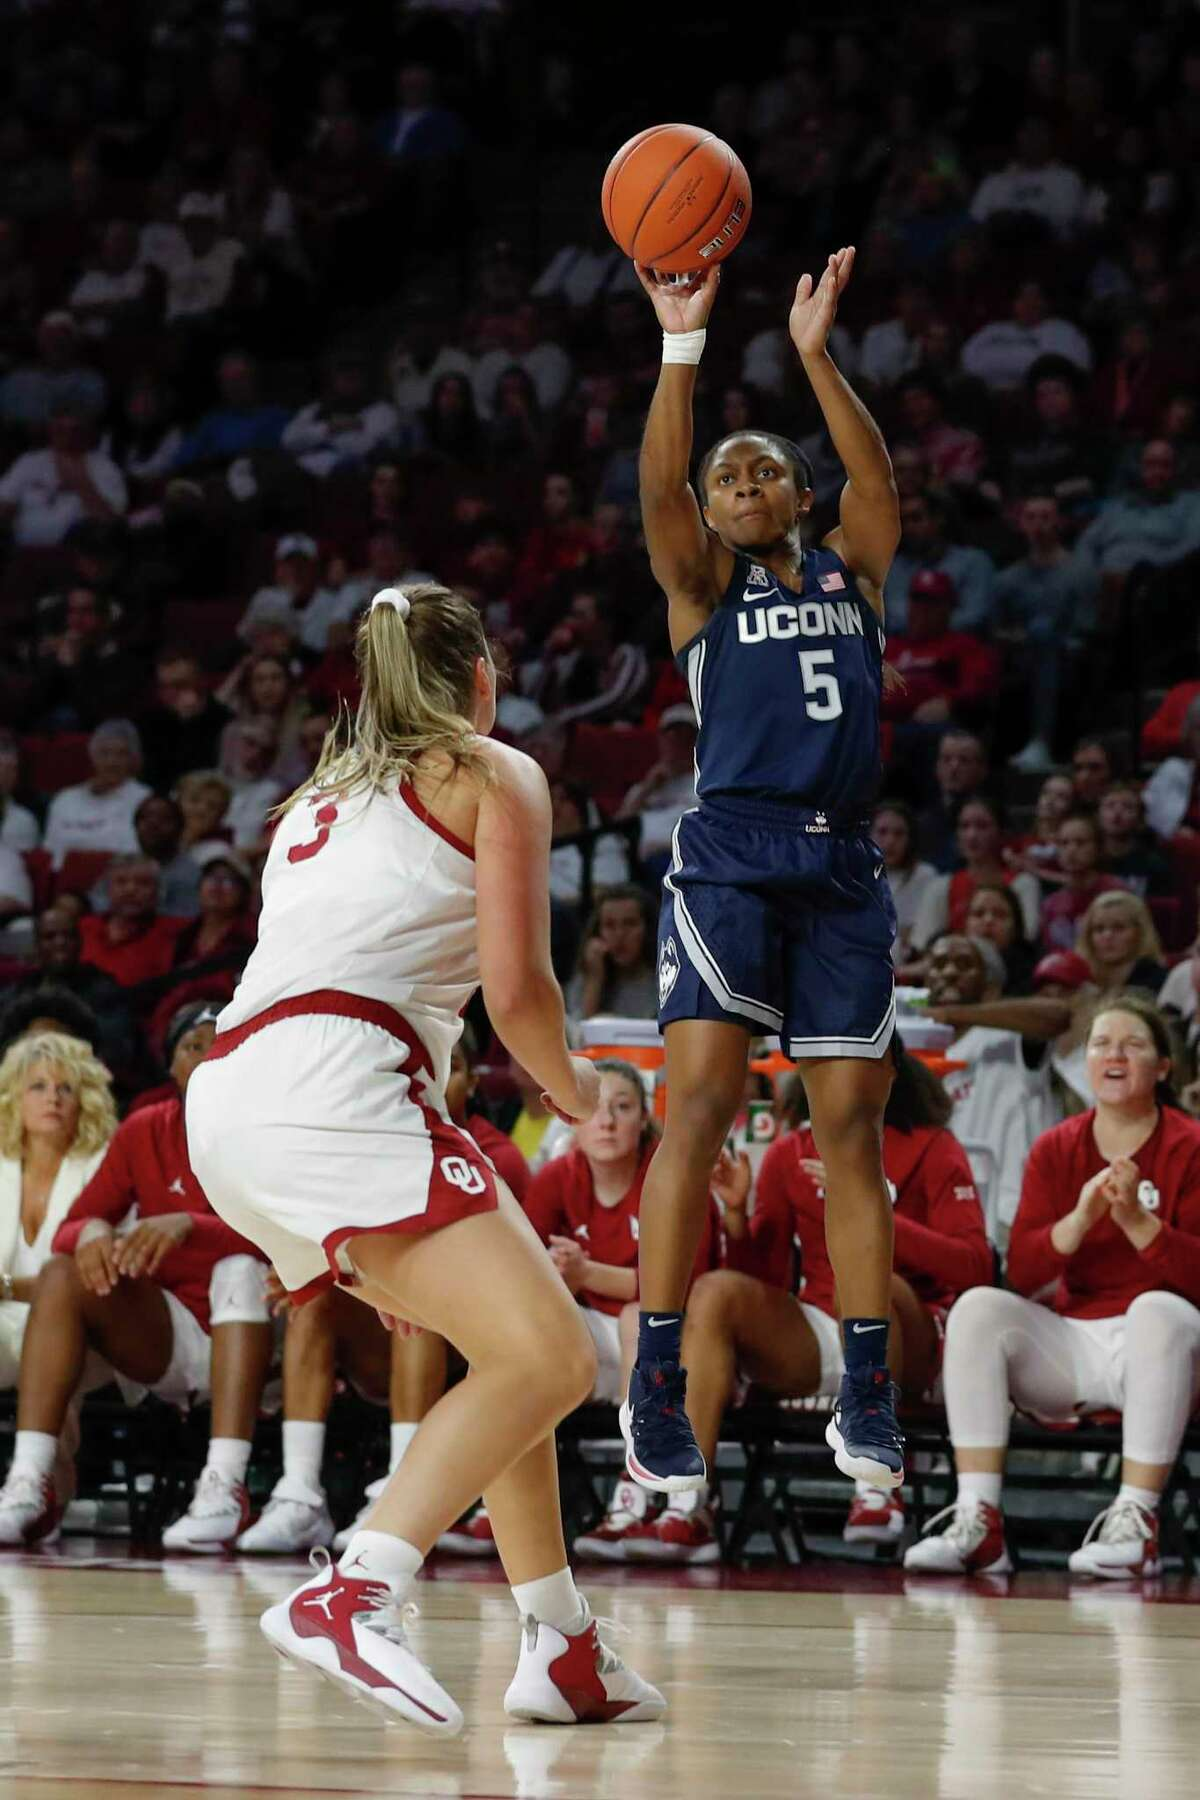 UConn's Crystal Dangerfield shoots over Oklahoma's Mandy Simpson on Dec. 19, 2018. The Sooners put a scare into the Huskies last season, as Dangerfield recalled.